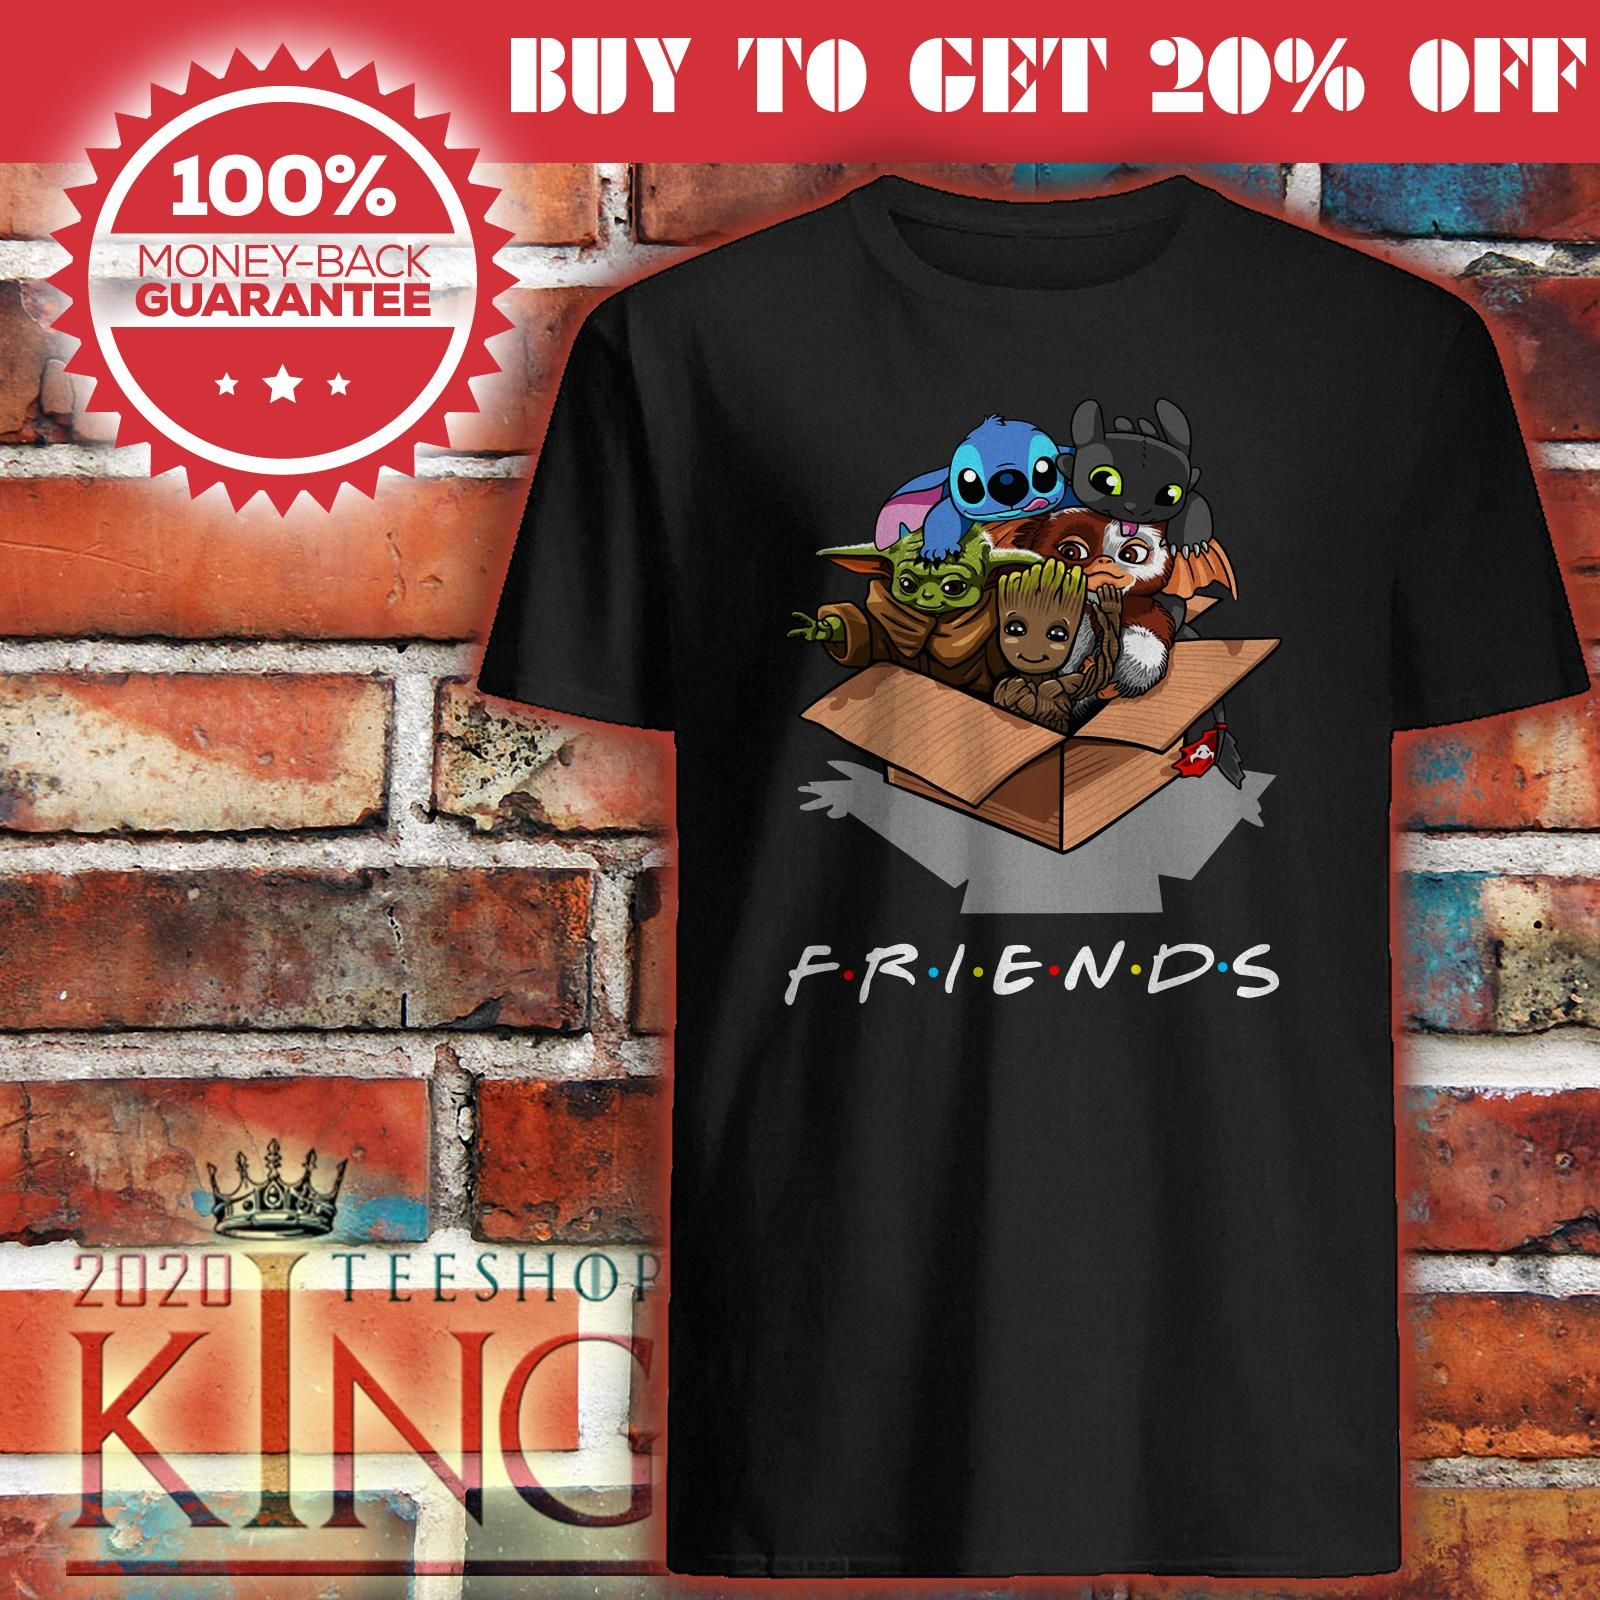 Baby Yoda Baby Groot And Toothless Stitch Gizmo Friends Shirt 2020 Kingteeshop In 2020 Friends Shirt Shirts Sweater Hoodie